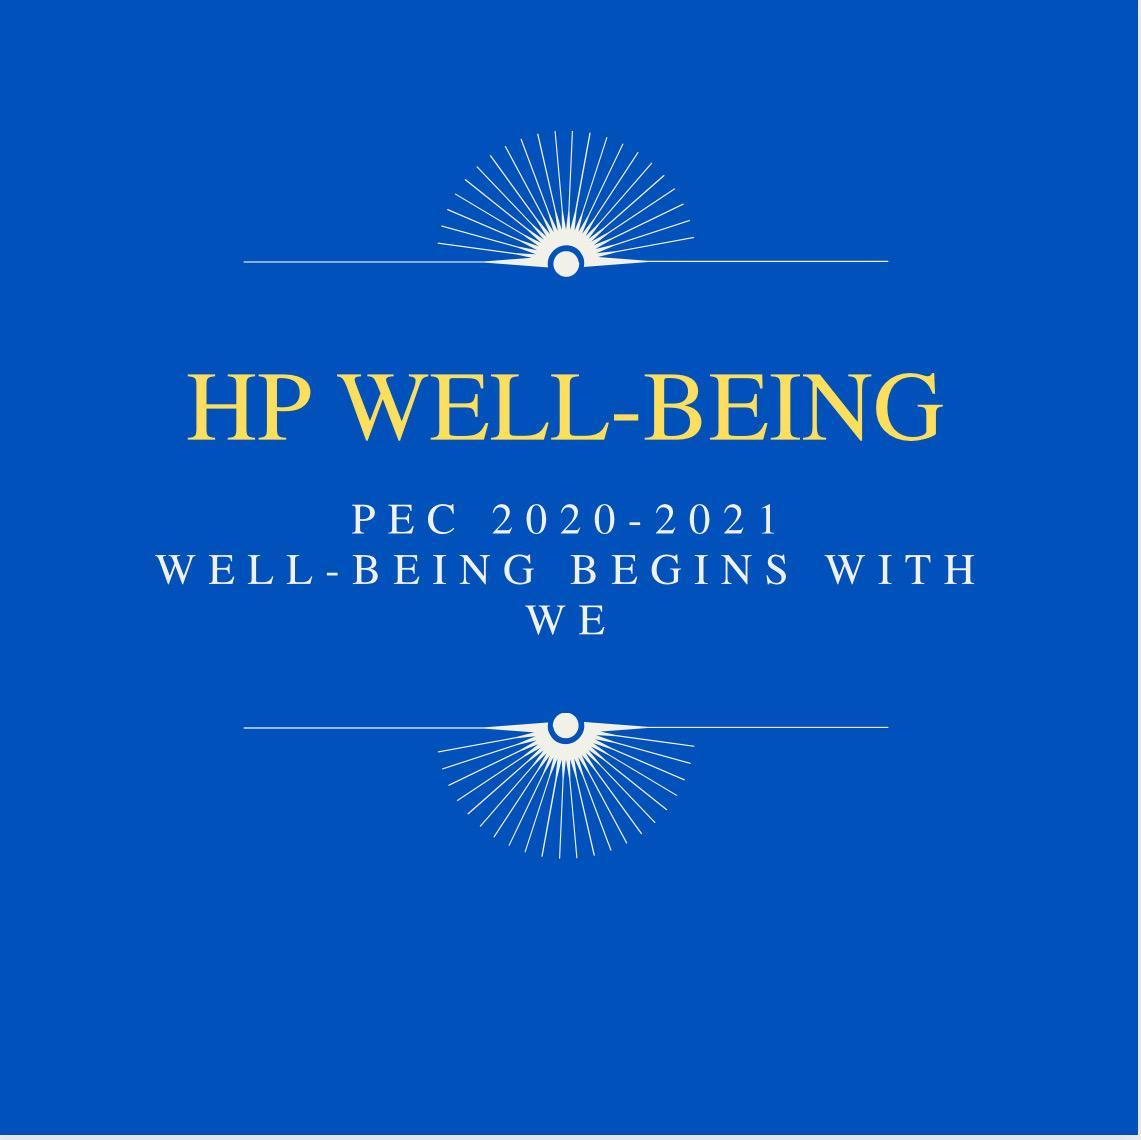 HP Well-Being